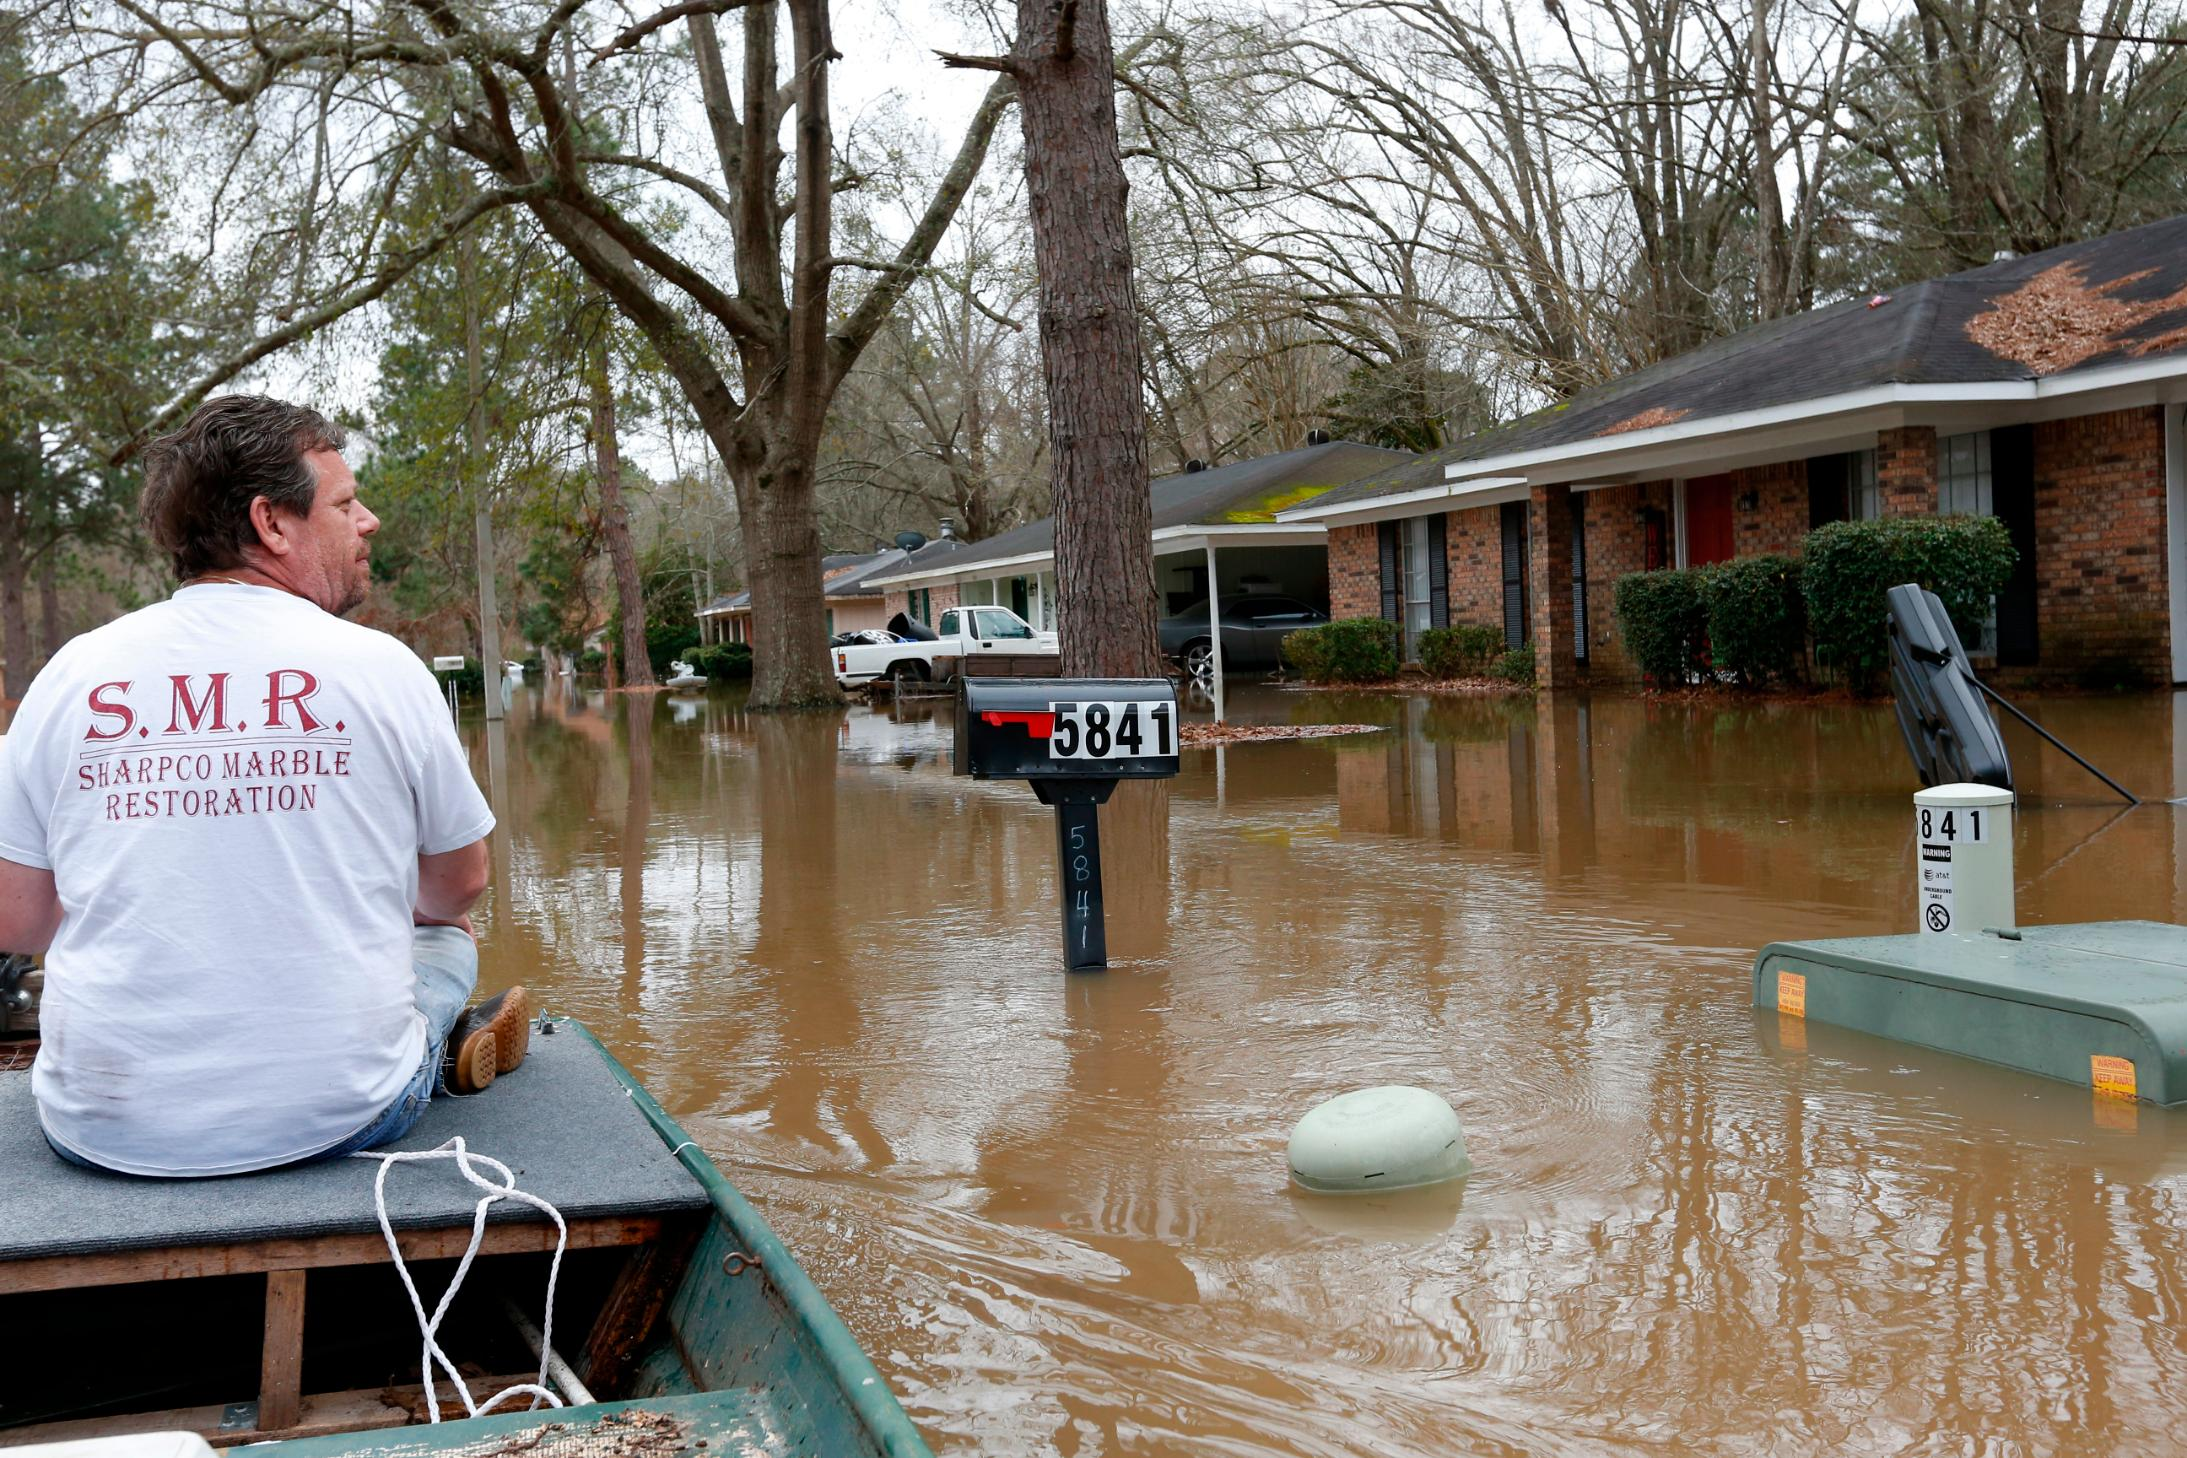 Historic flood waters in Mississippi will recede later this week. But not before more rain could cause issues for thousands